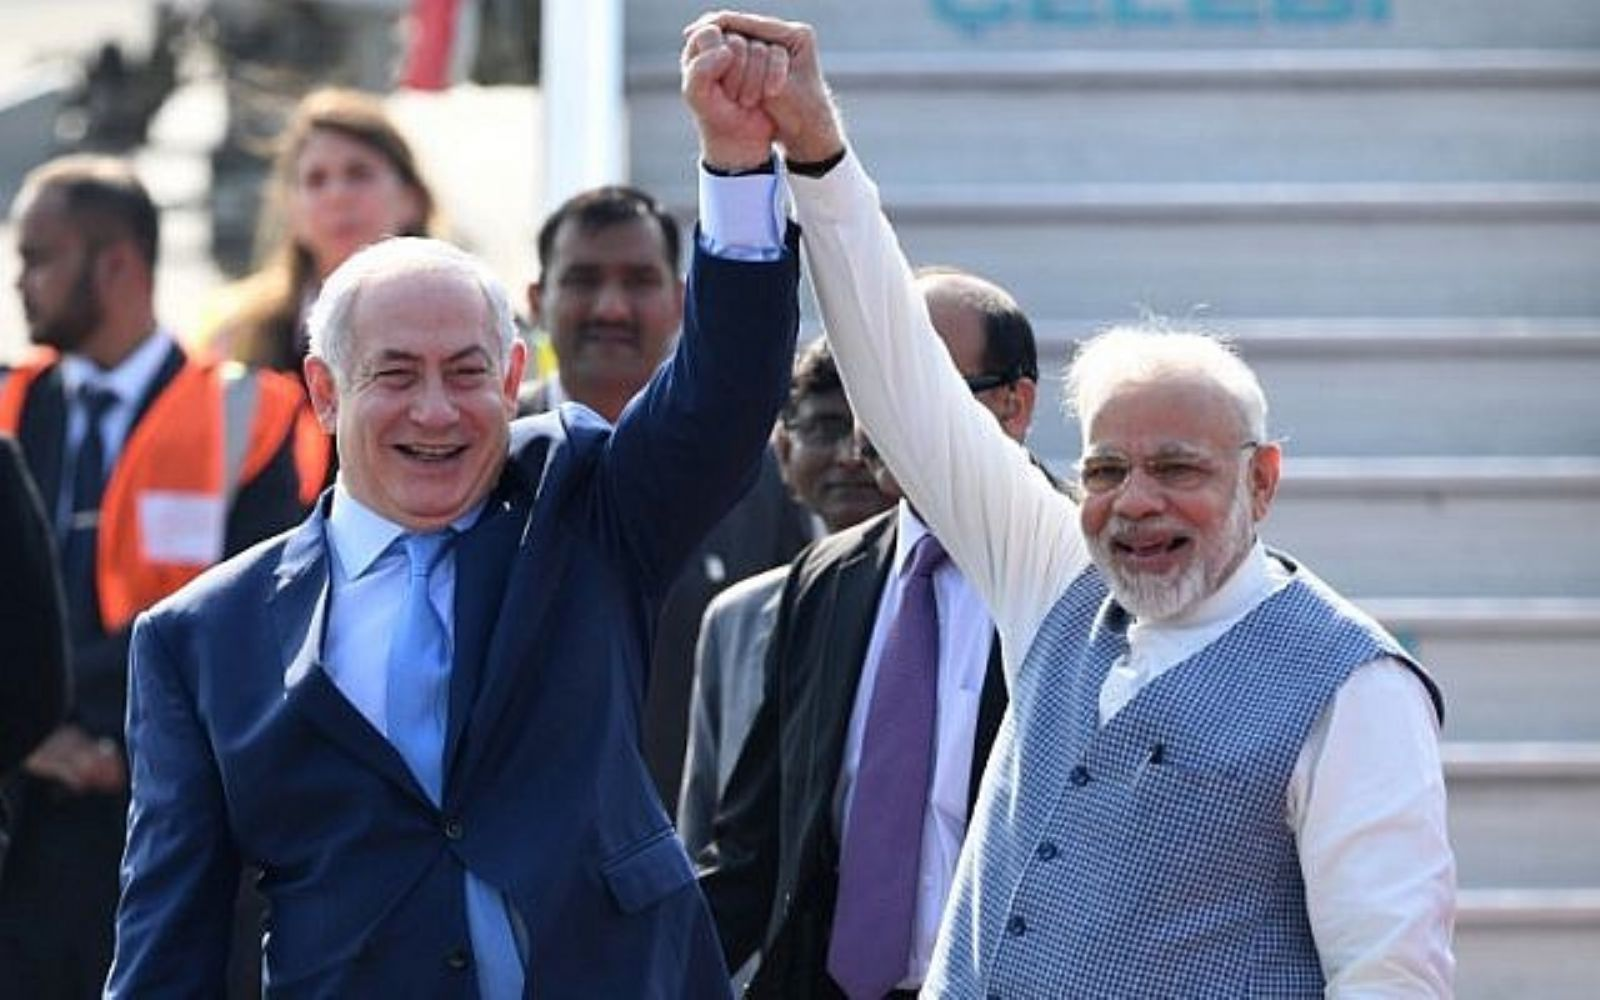 Netanyahu arrives in India, is greeted on tarmac by PM Modi